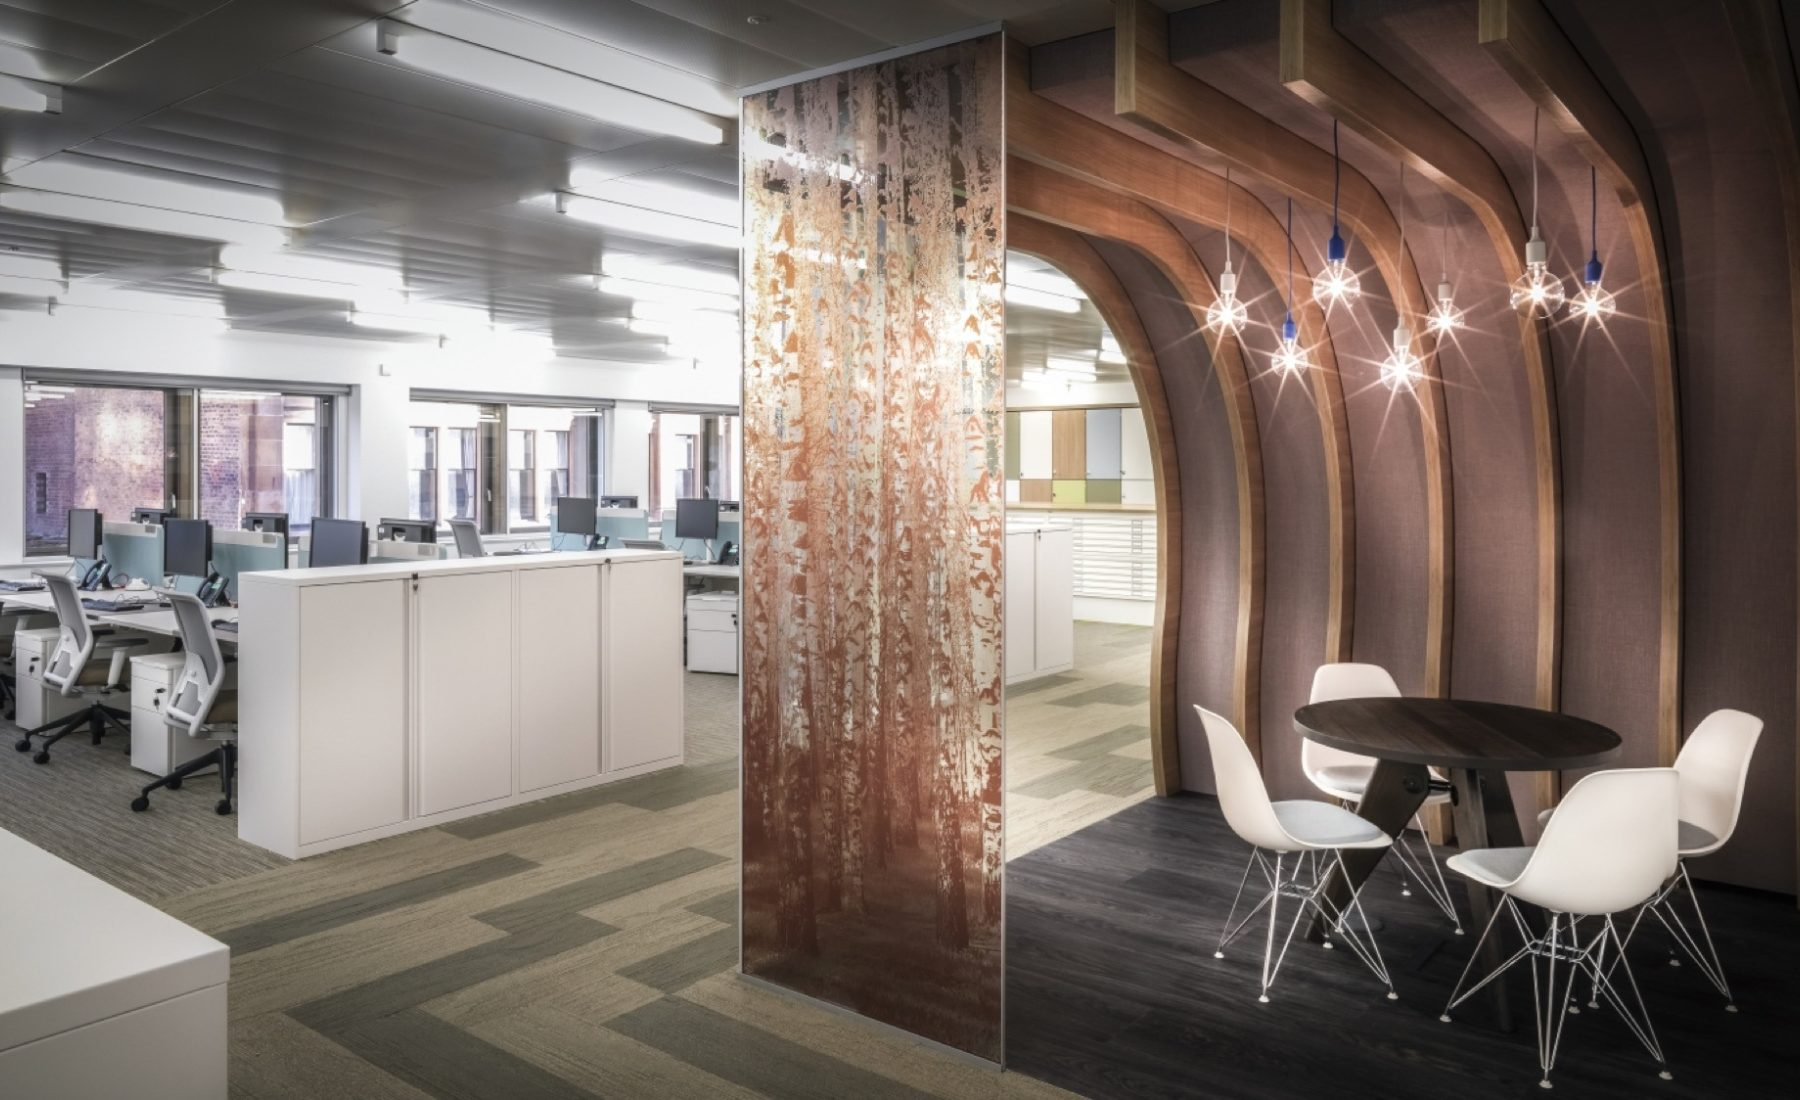 Network Rail Glasgow office fit out